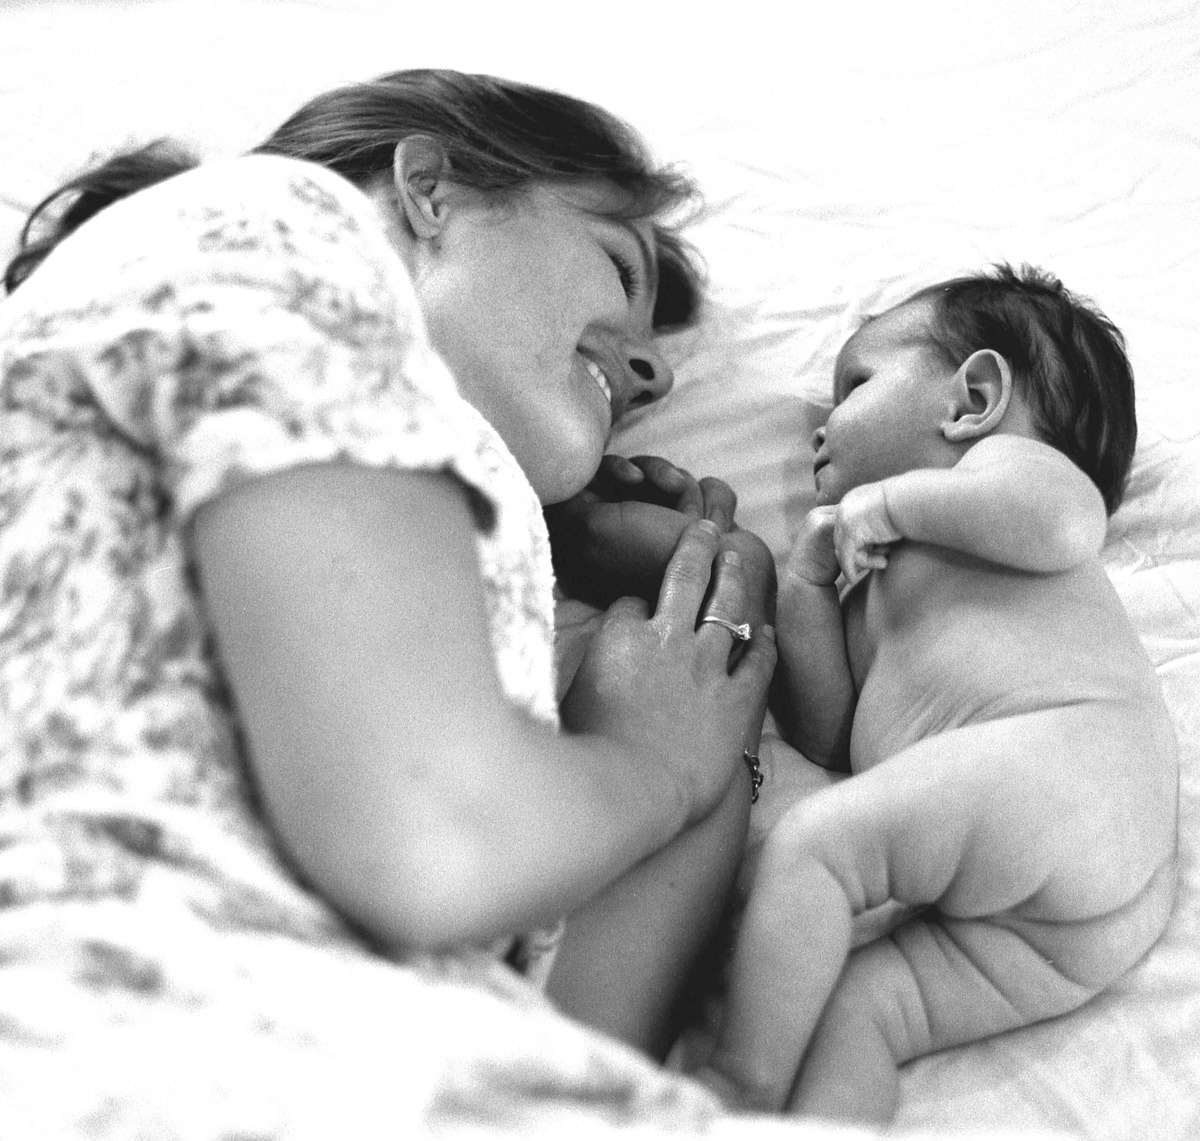 Mother and her baby who has disabilities and unconditional love